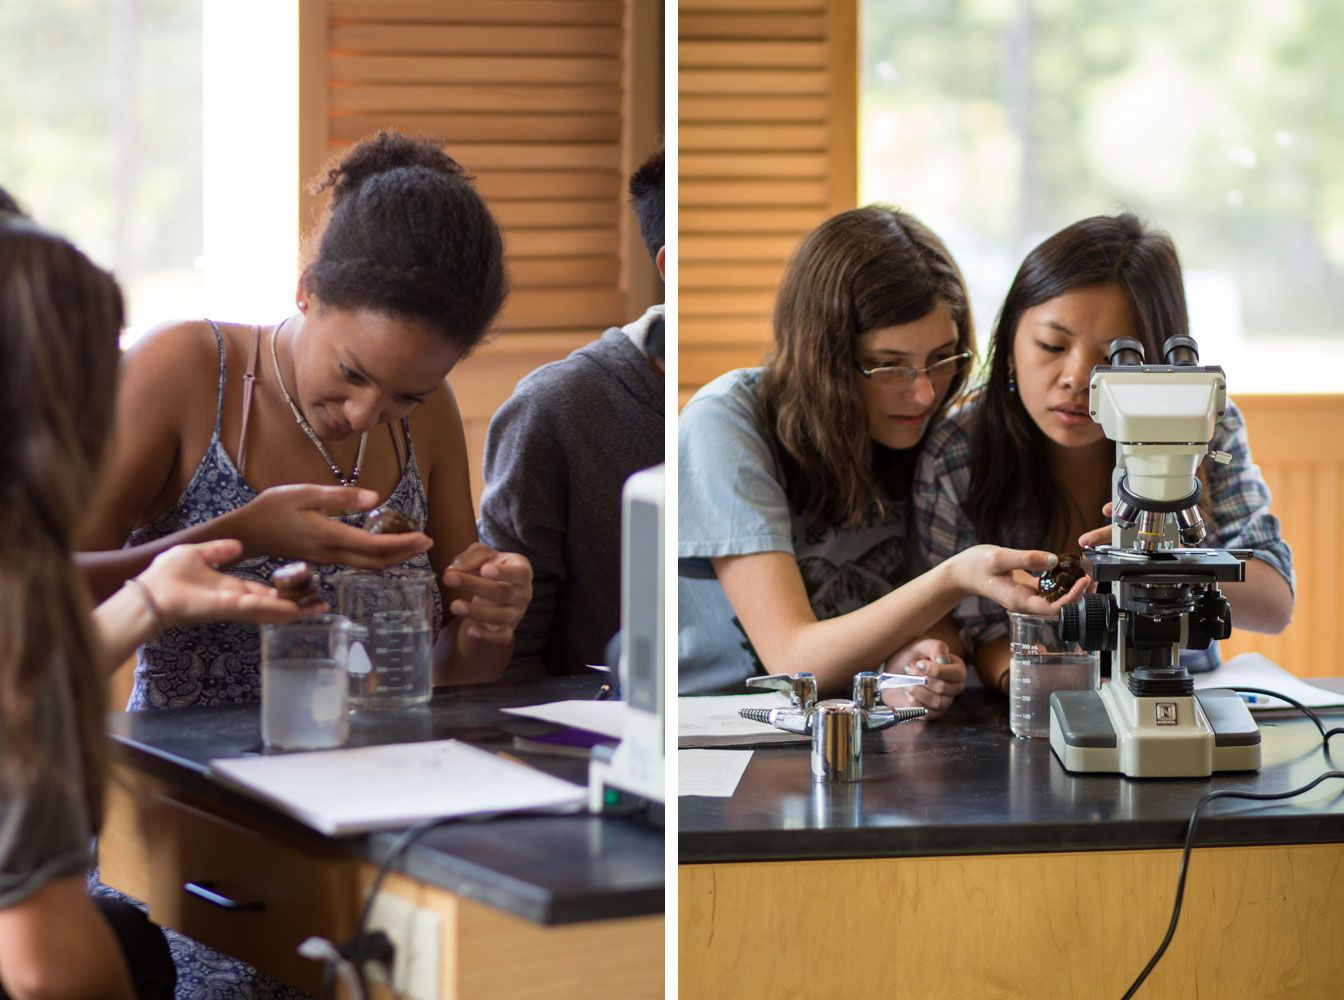 Left: Lauren Conde '17 gets over her initial reaction and studies the anemone closely. Right: Audrey Quick '17 and Li An Dezmelyk '17 observe the slimy skin of the anemone.